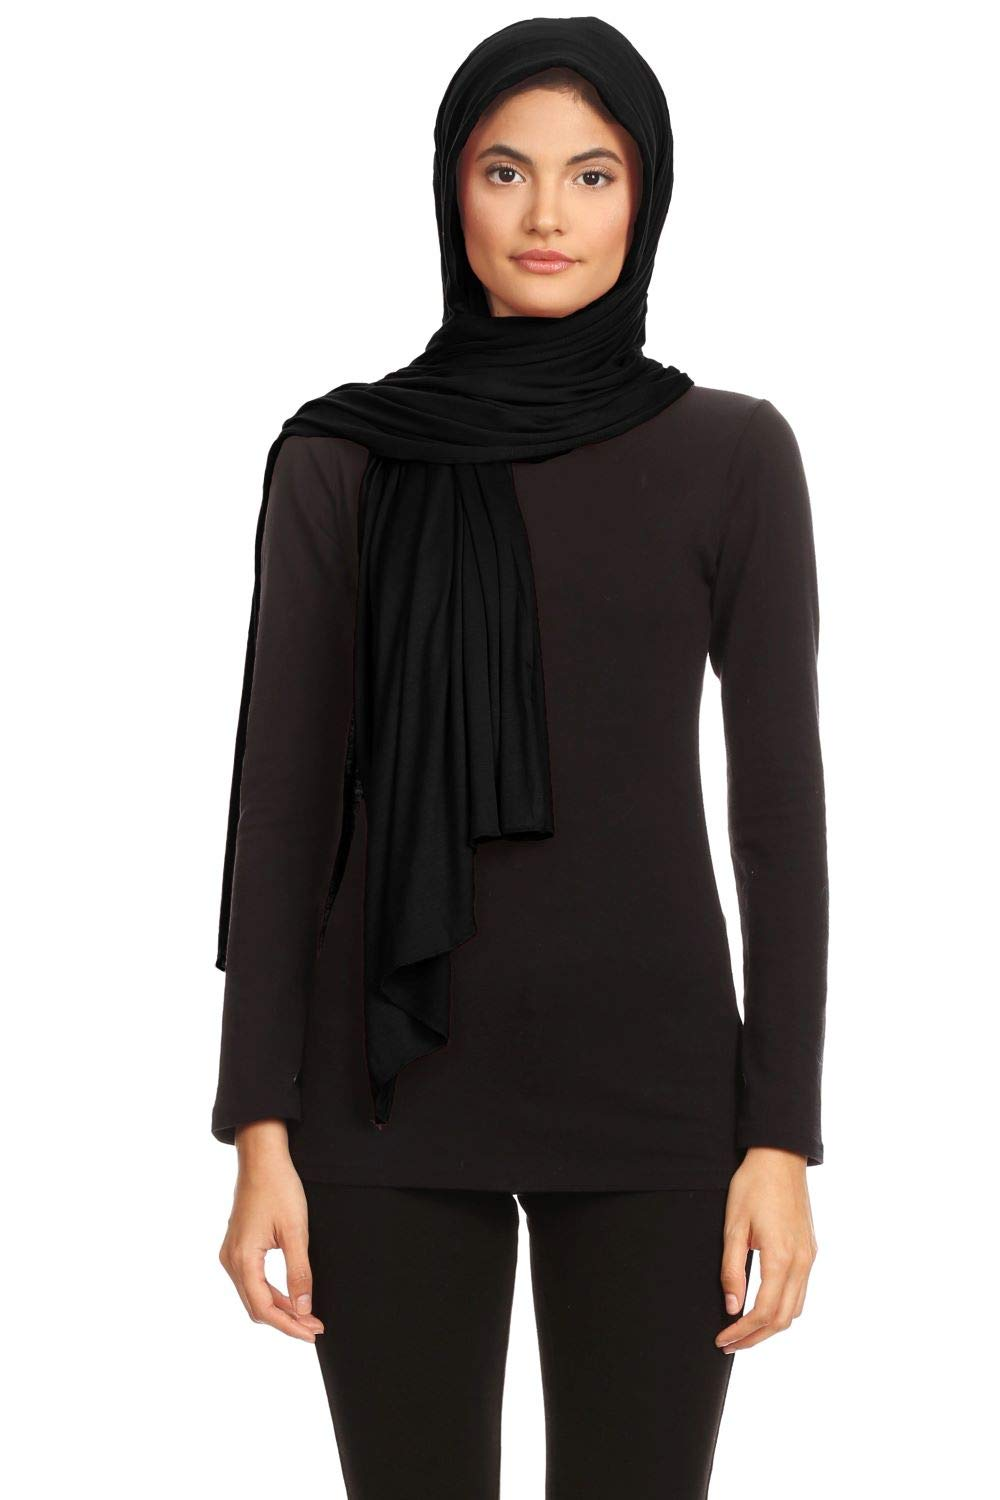 Abeelah Jersey Hijab Scarf - Made in the USA - Islamic, Muslim, African and Indian Fashion Compatible Black,Large